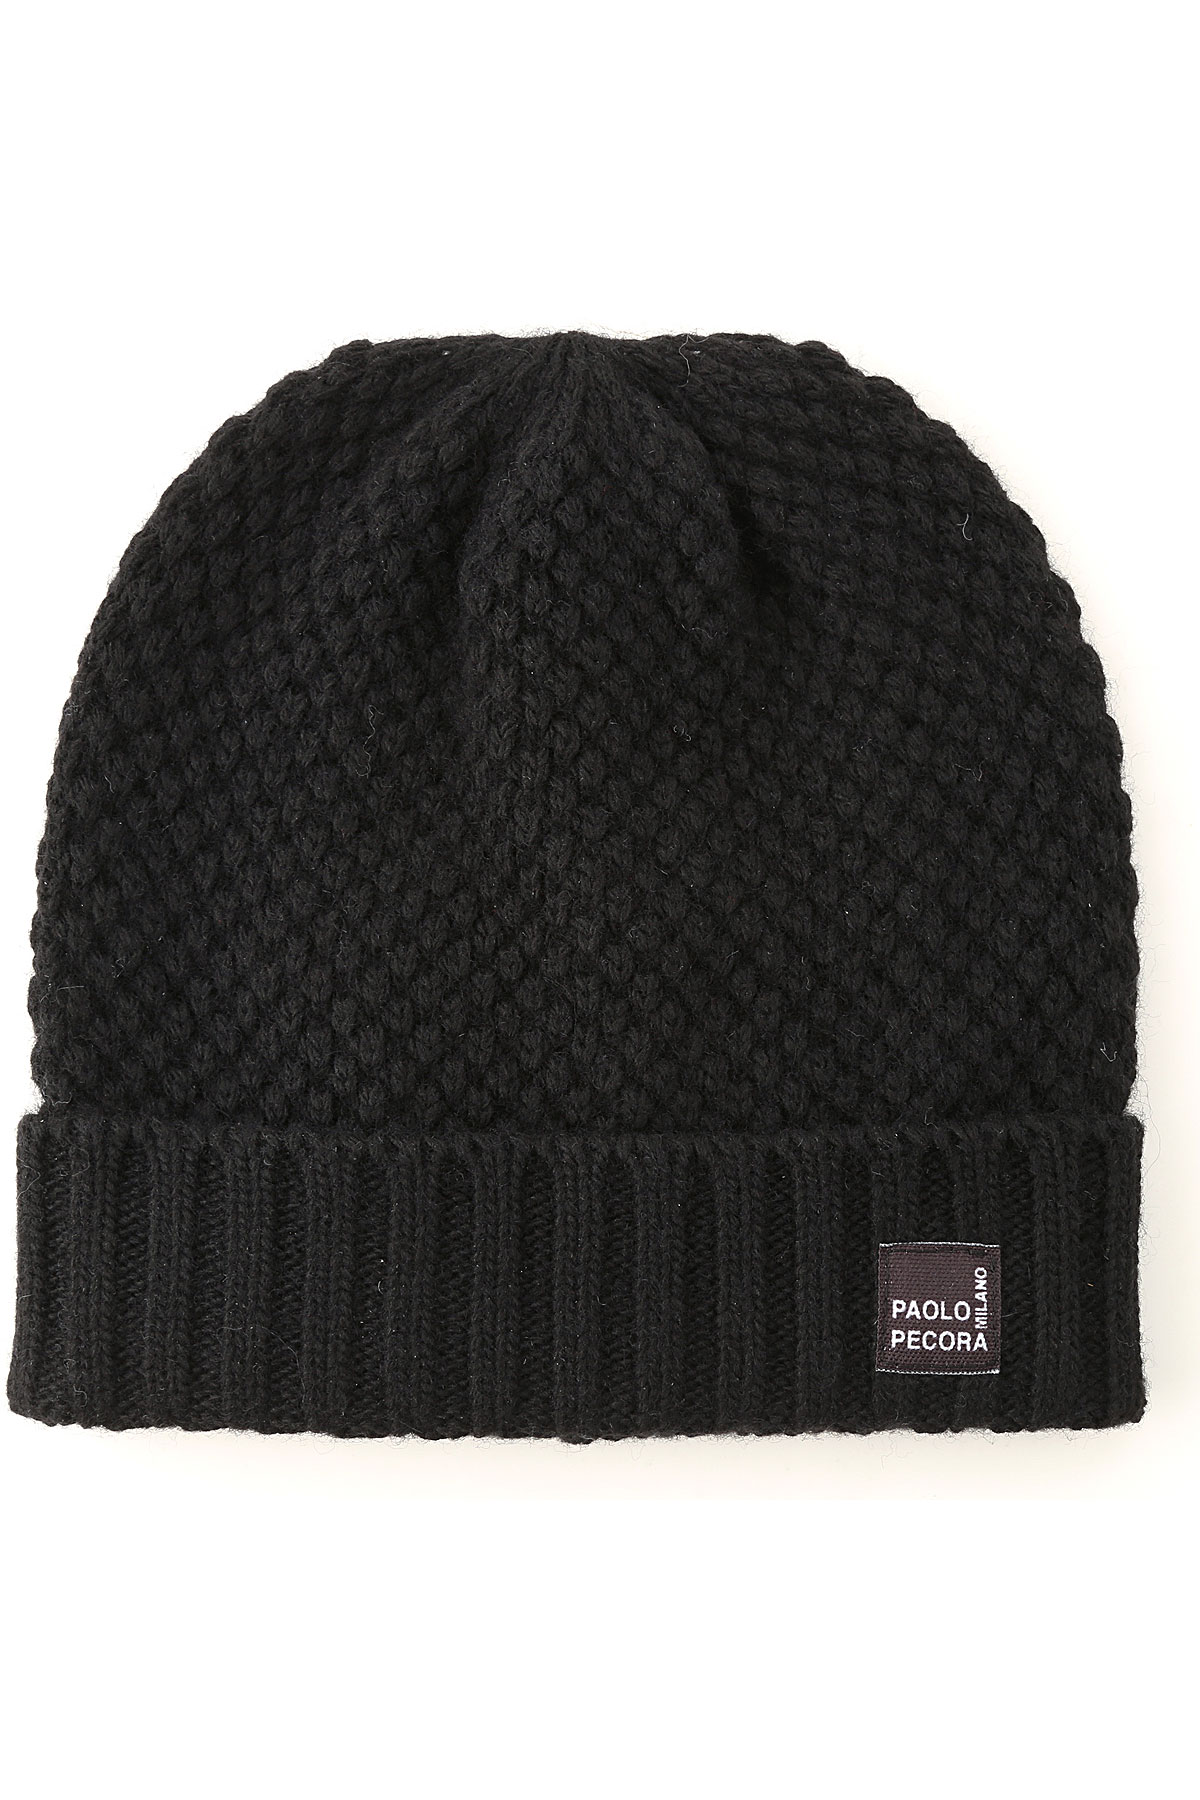 Paolo Pecora Kids Hats for Boys On Sale, Black, Wool, 2019, 16Y 6Y